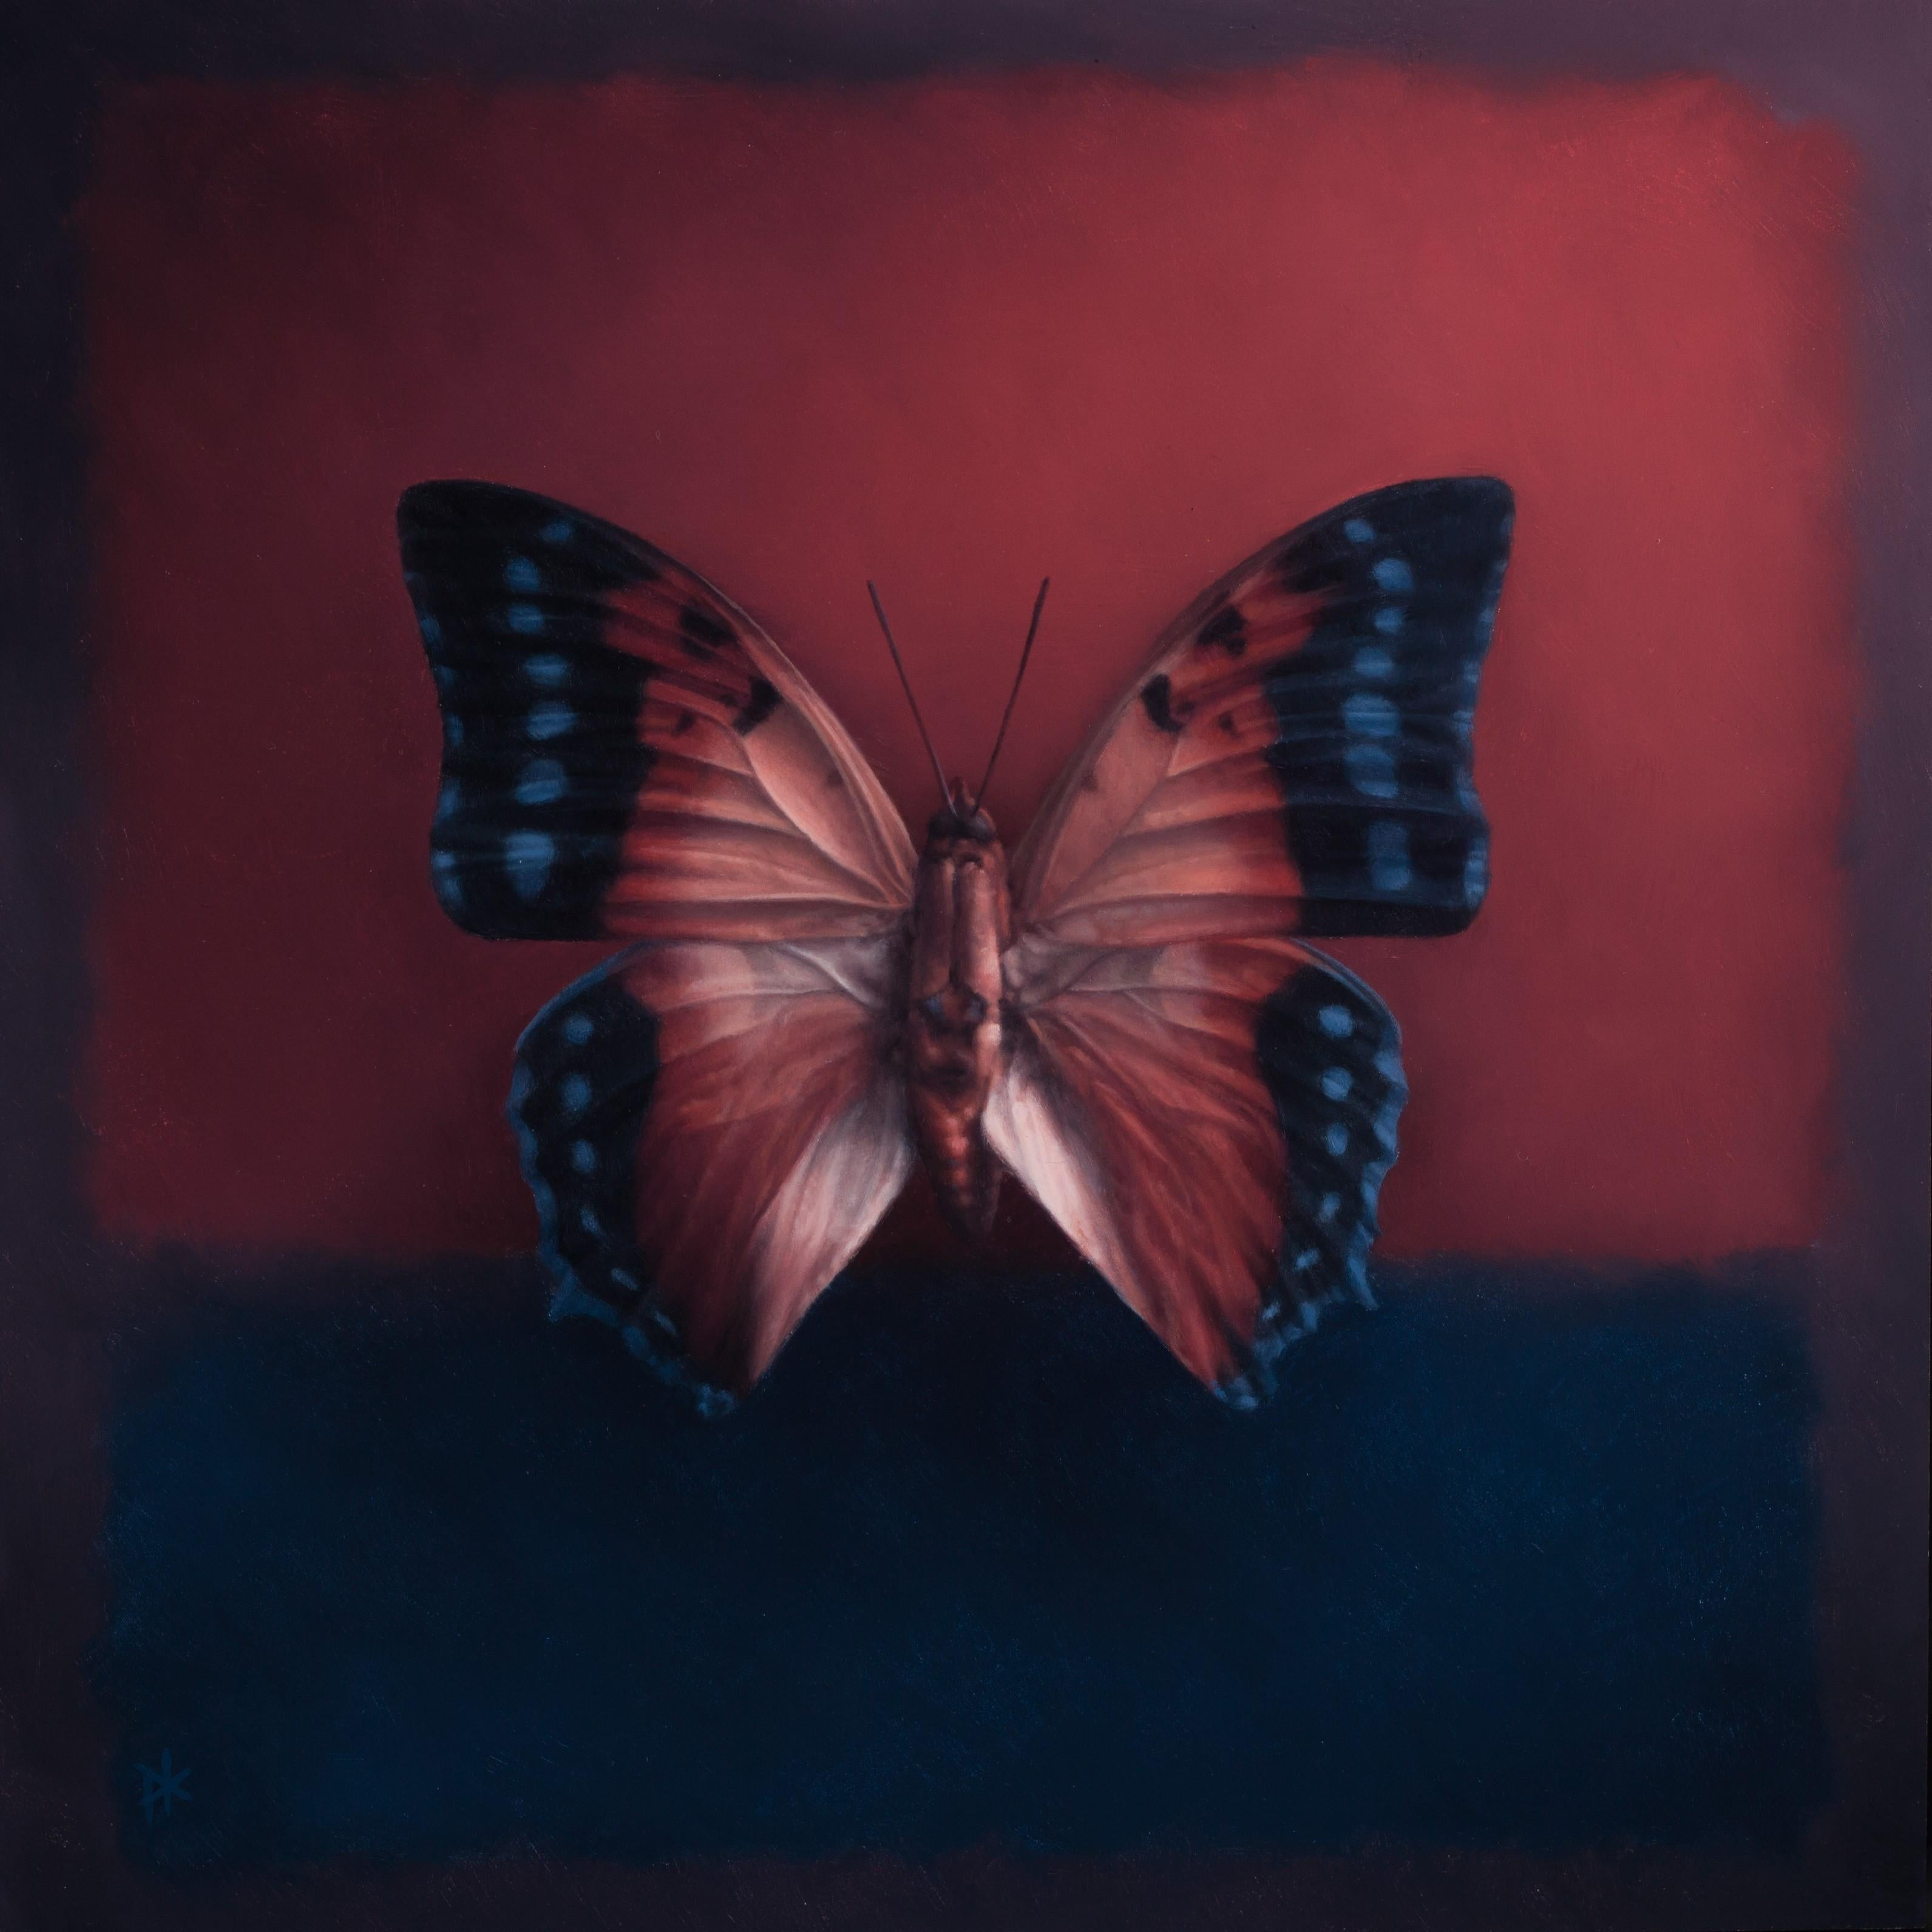 Butterfly 14, Oil Painting